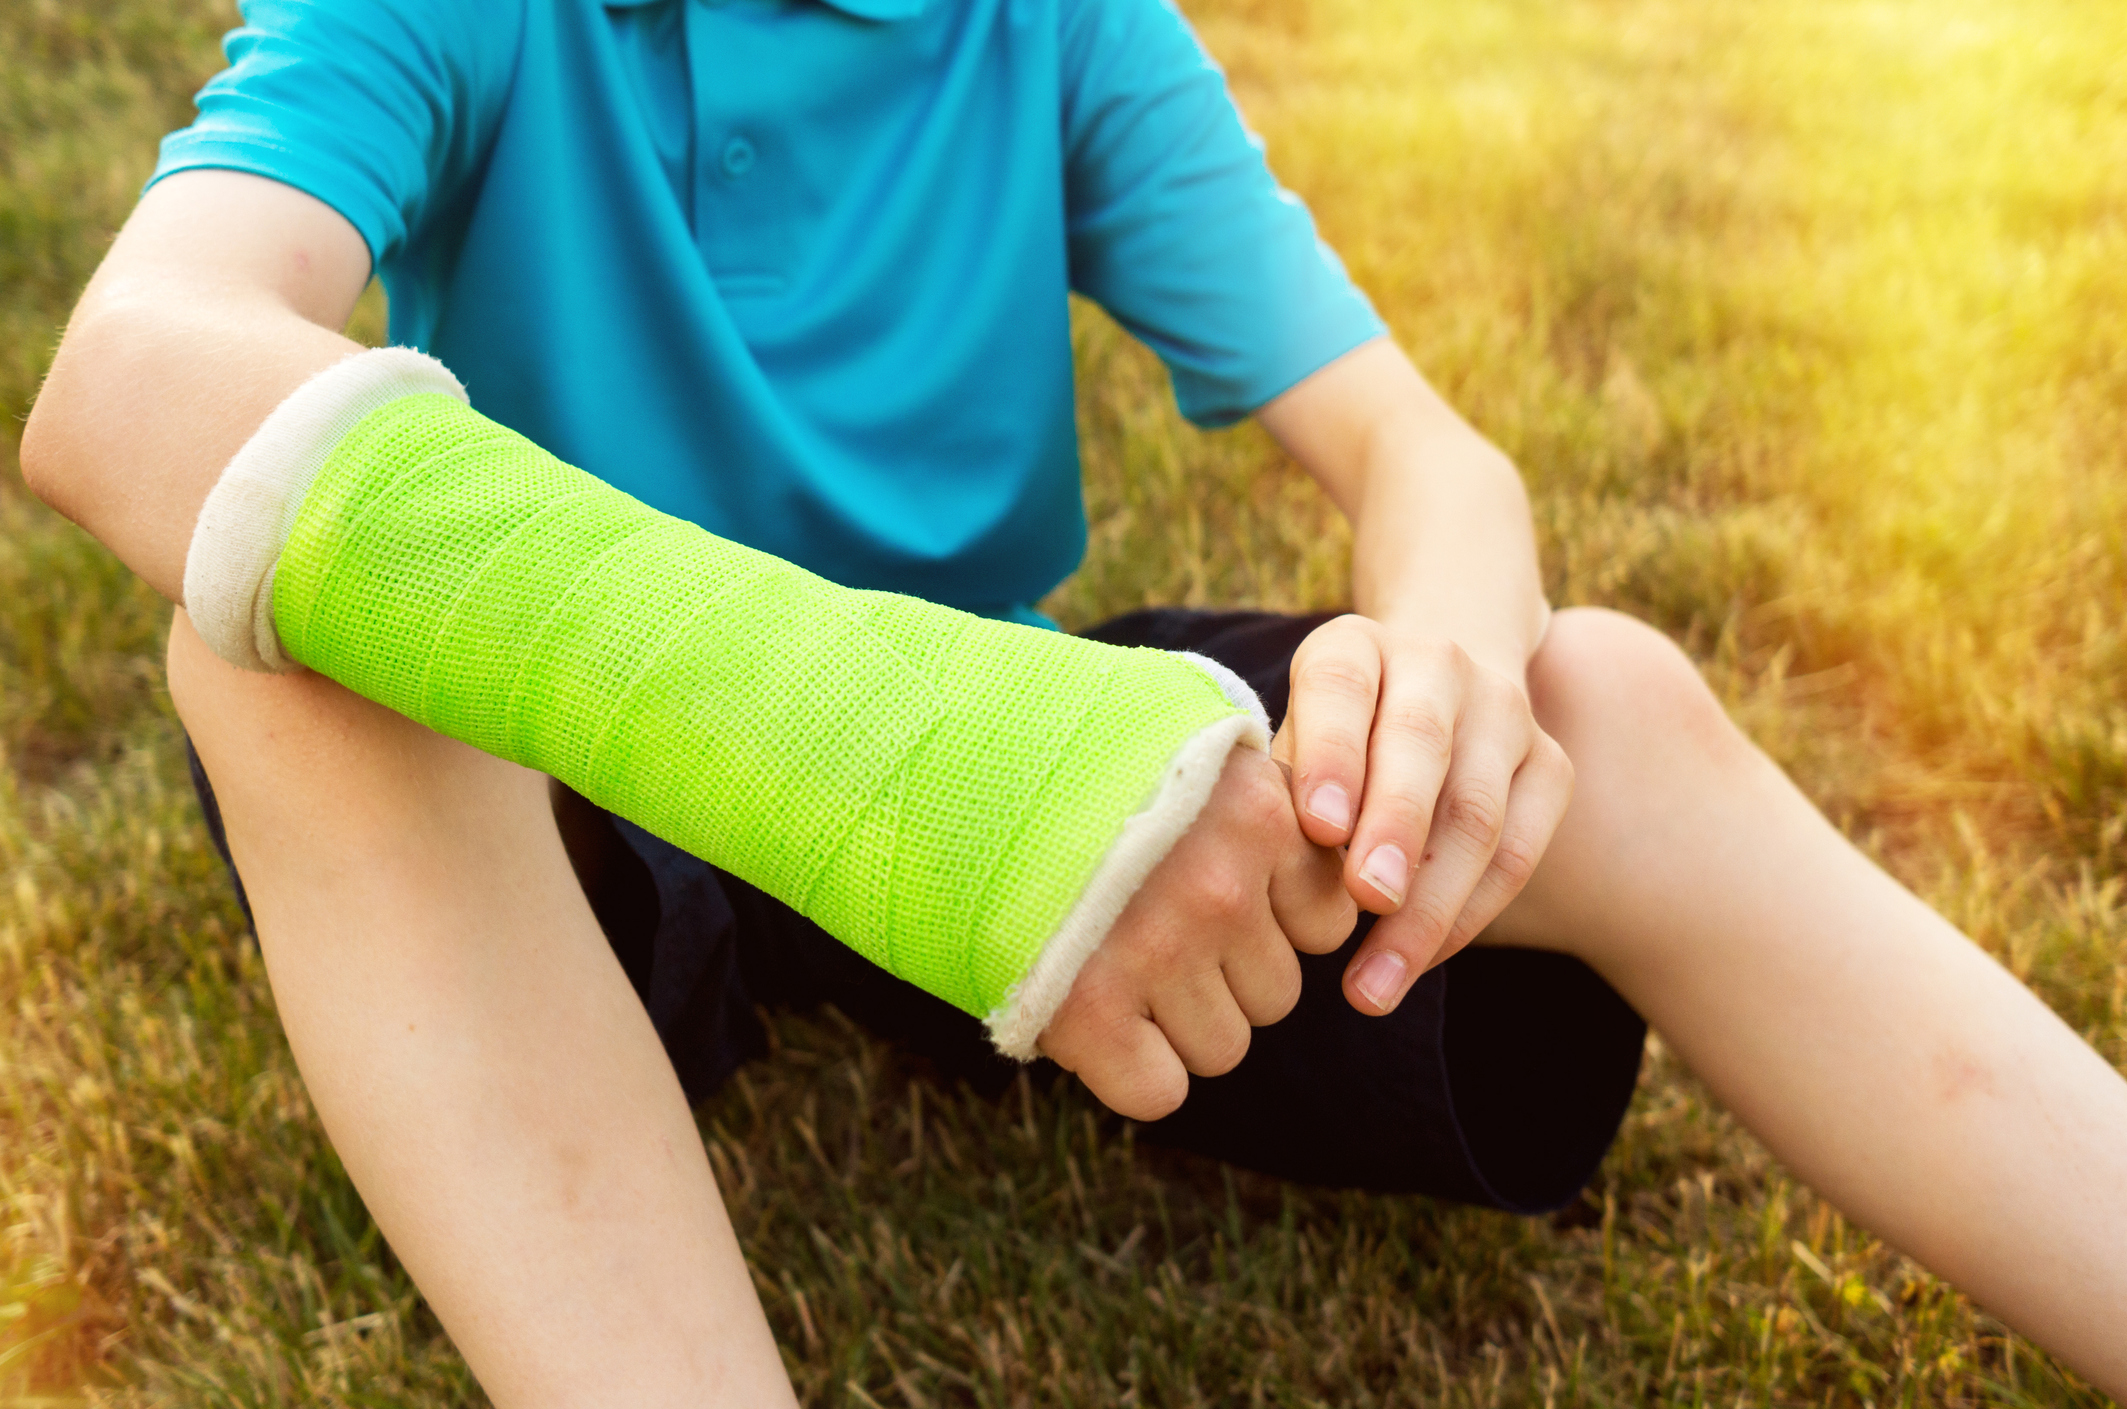 Arm pain and injury